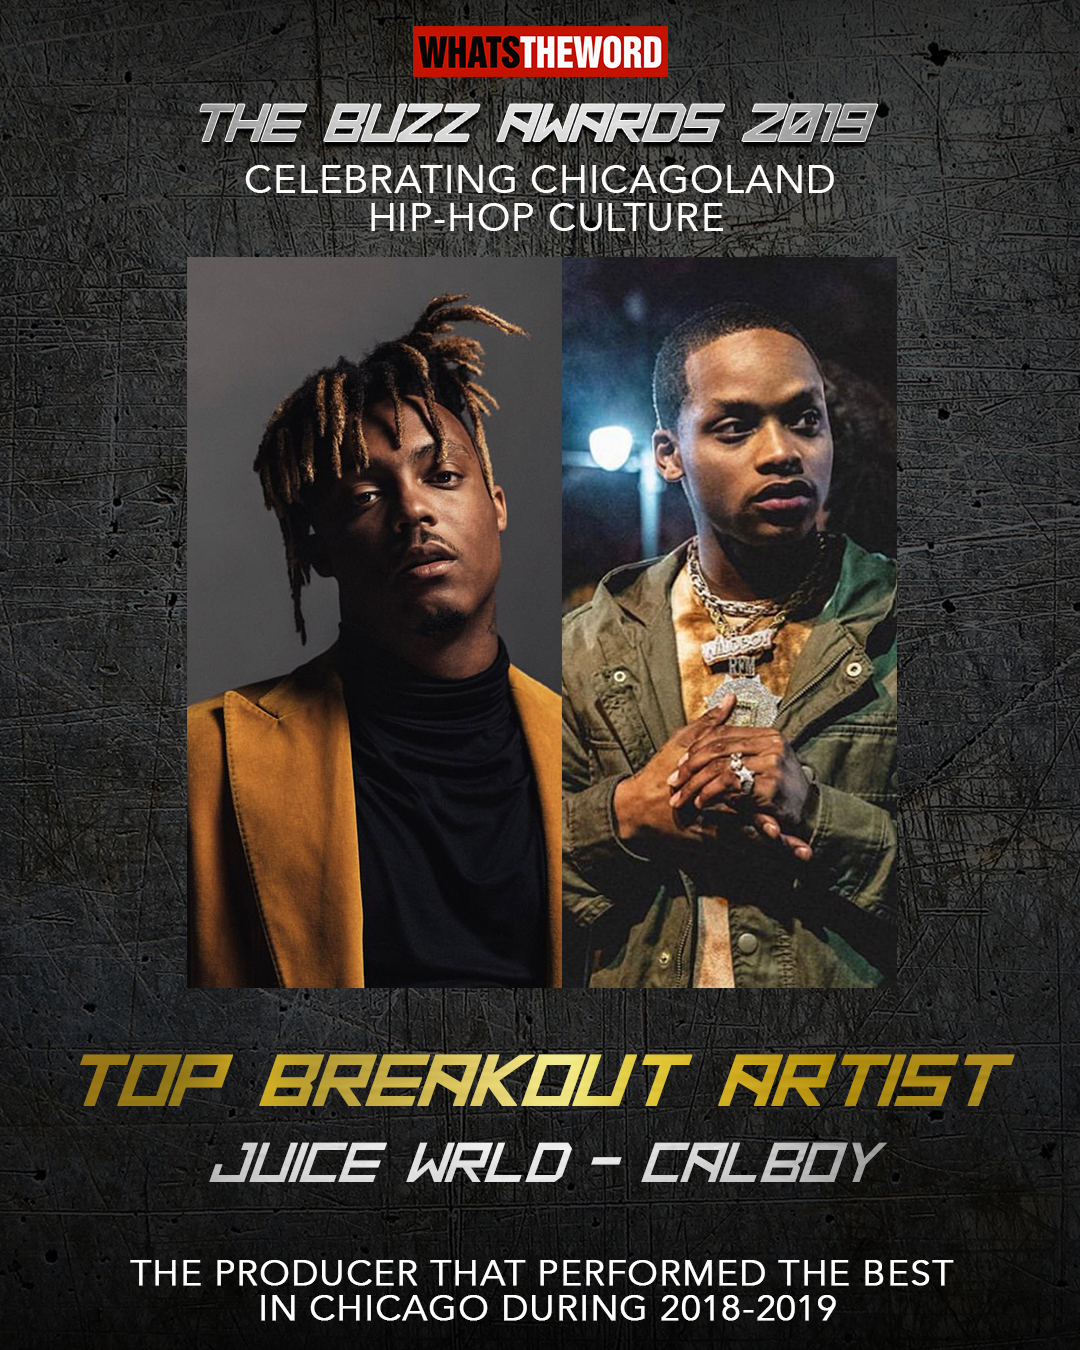 2Breakout Artist_The Buzz Awards 2019.jpg